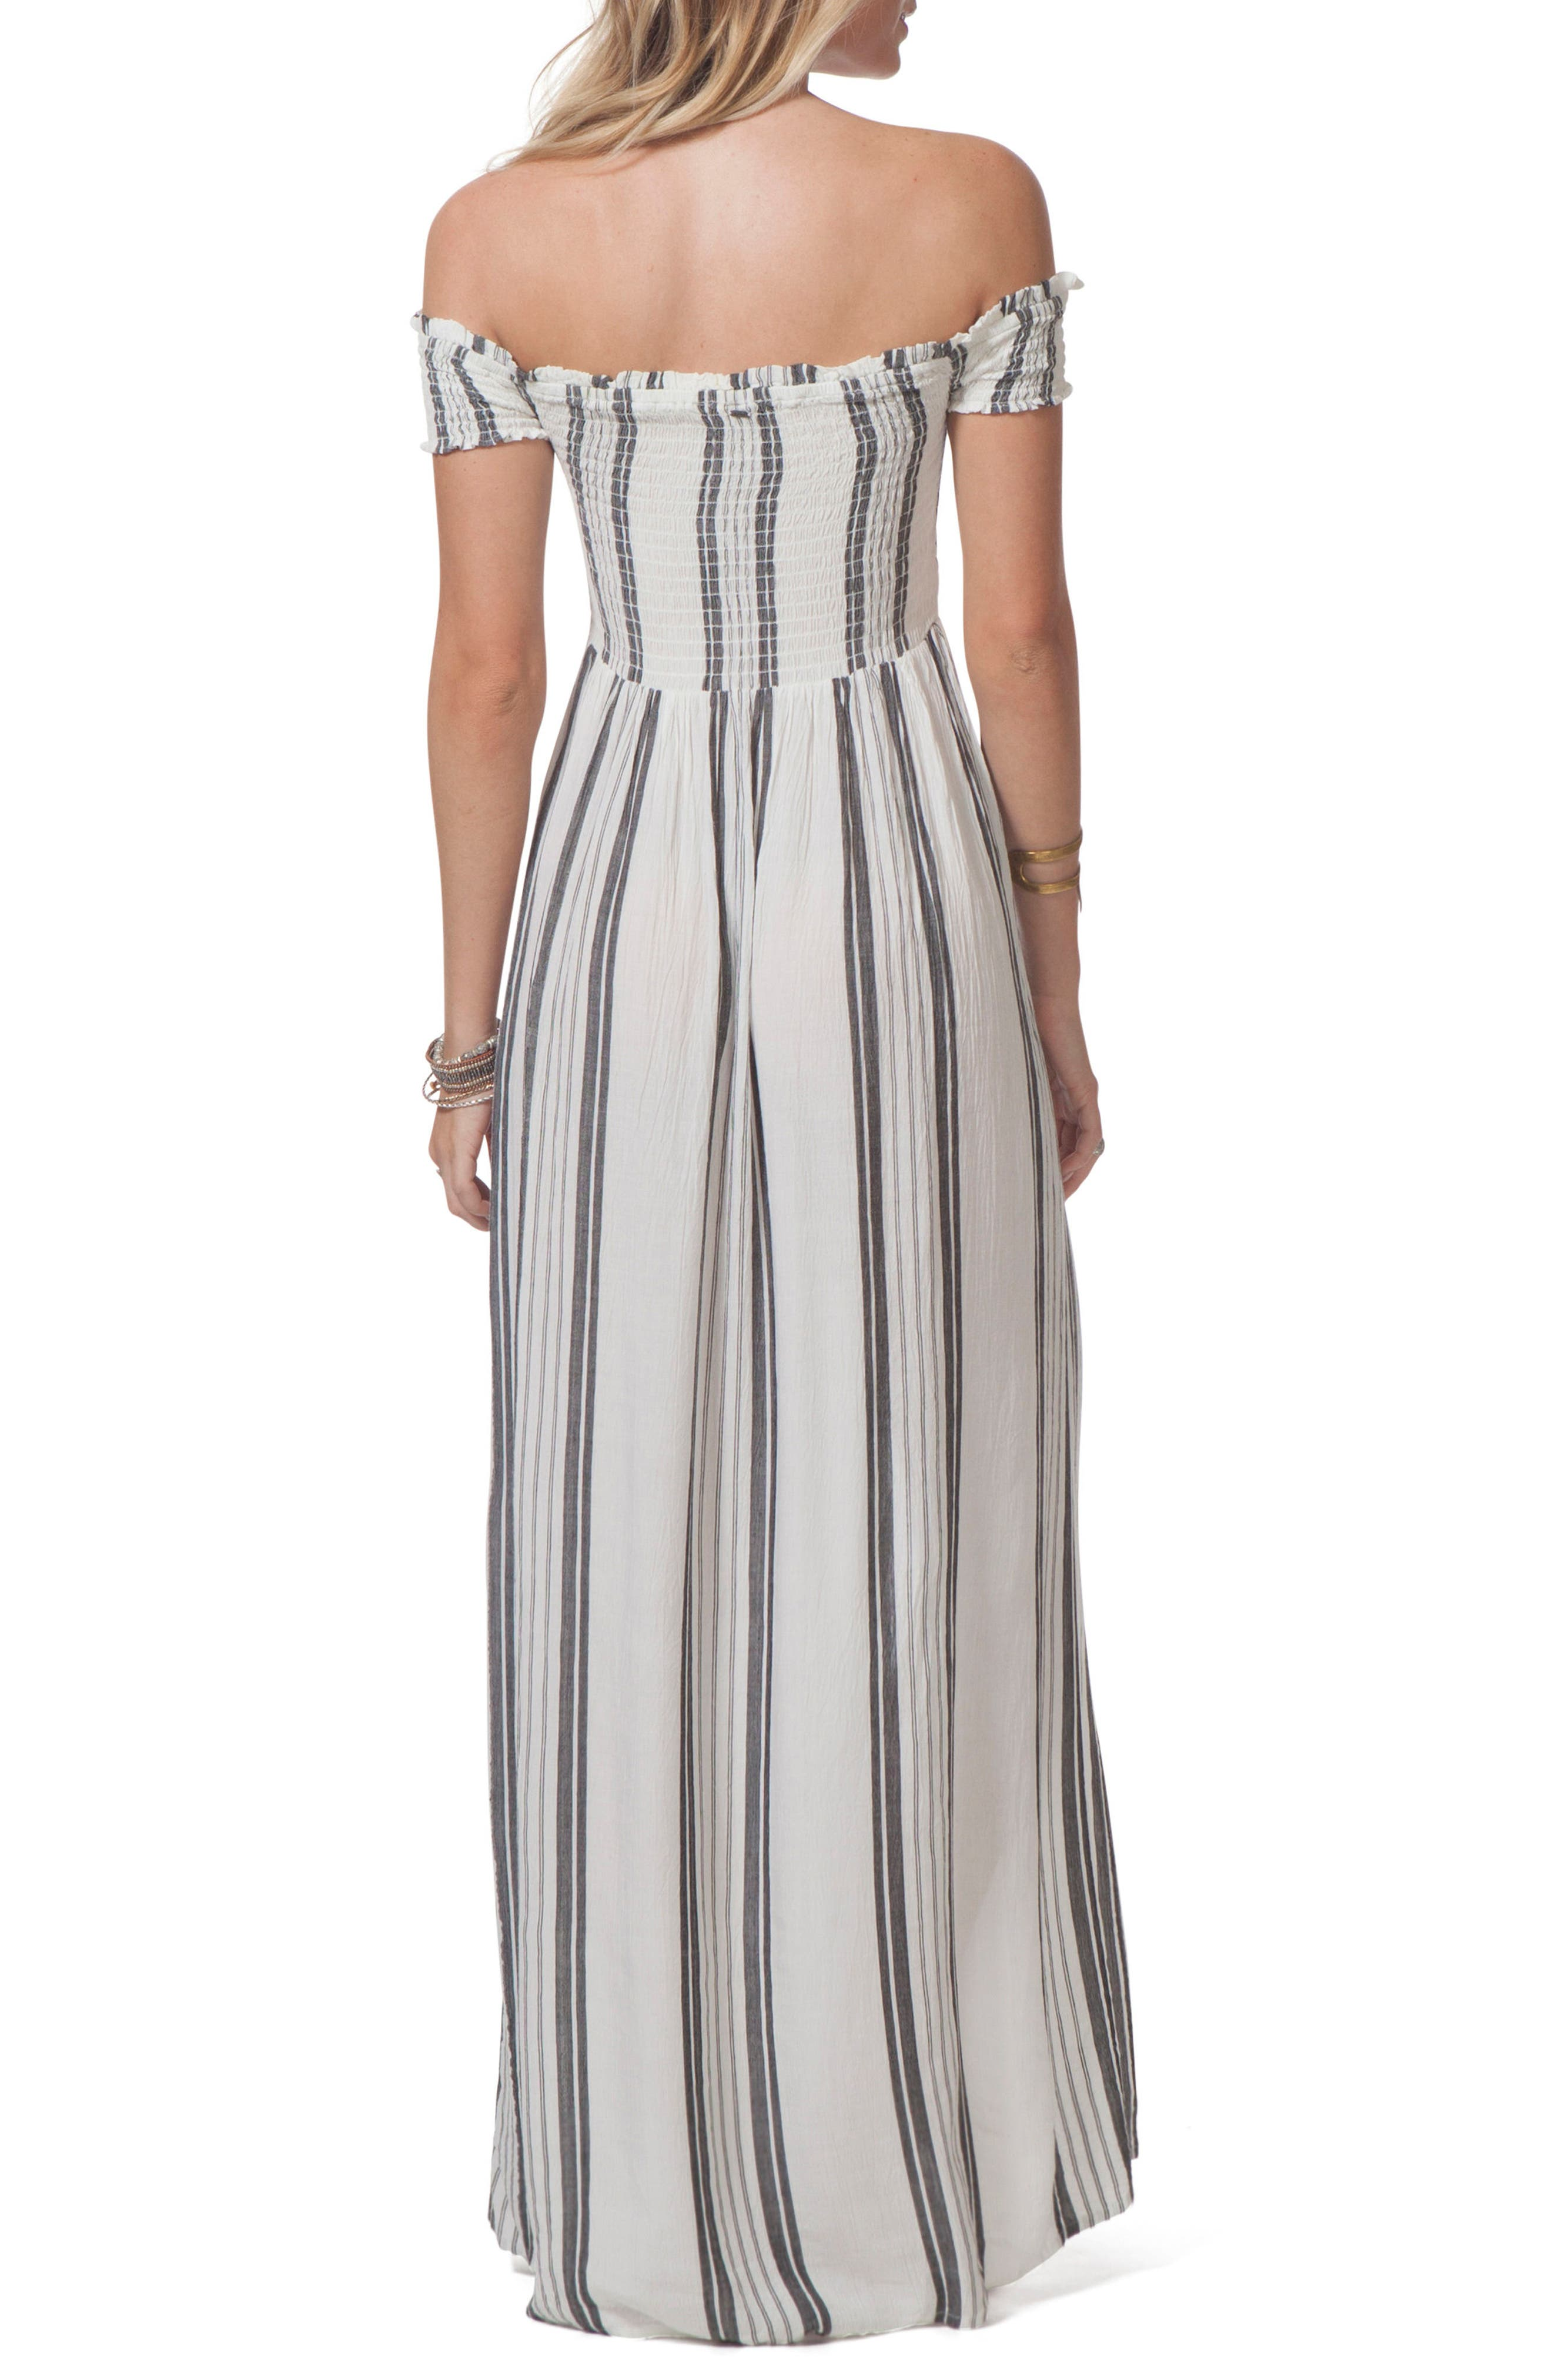 Soulmate Off the Shoulder Maxi Dress,                             Alternate thumbnail 2, color,                             White